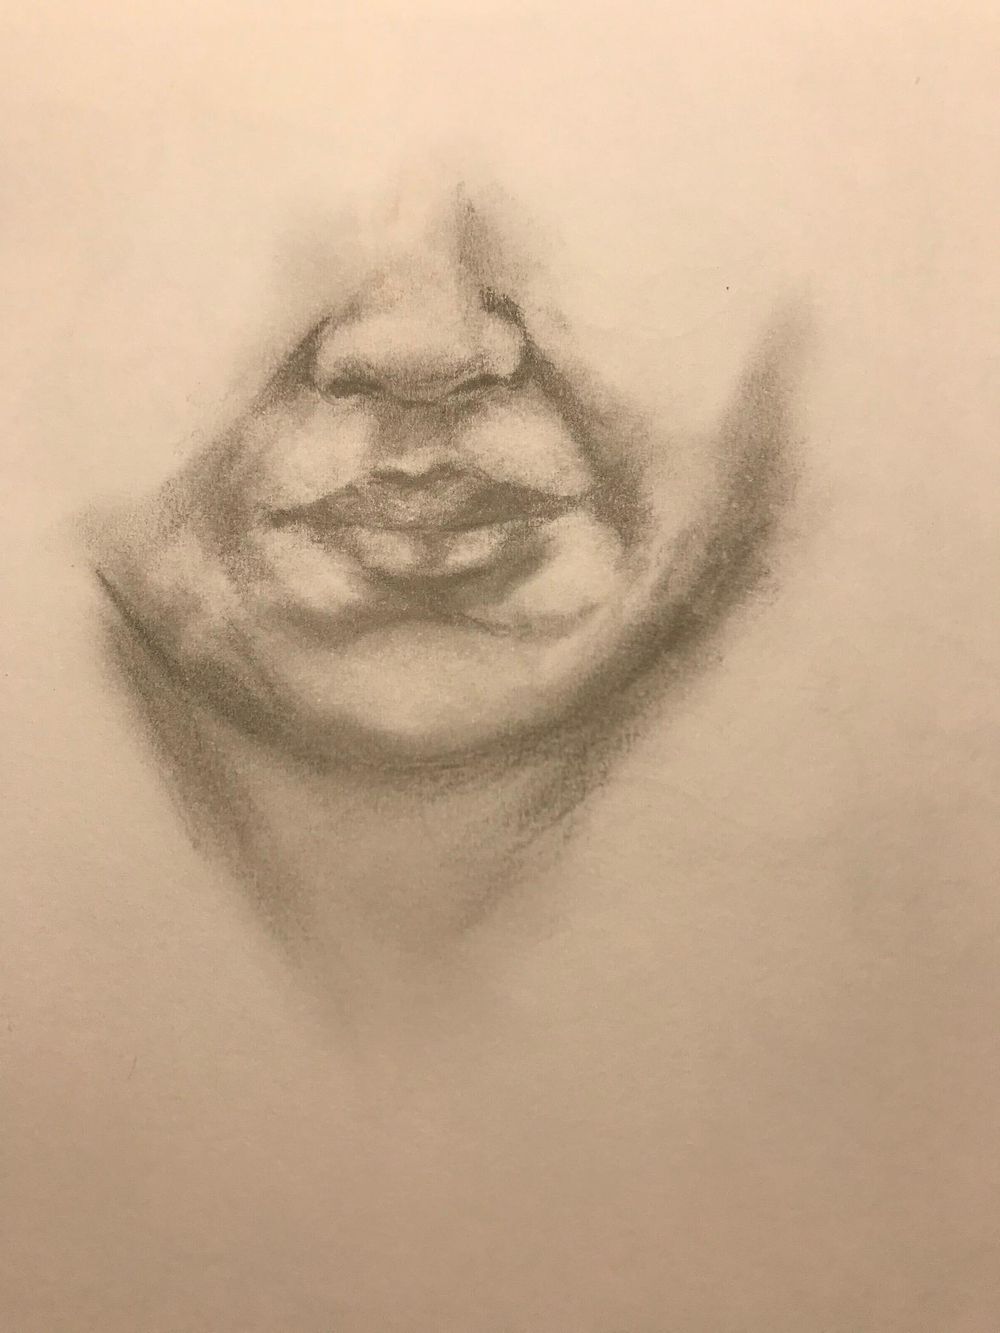 Portraiture Drawing - image 3 - student project